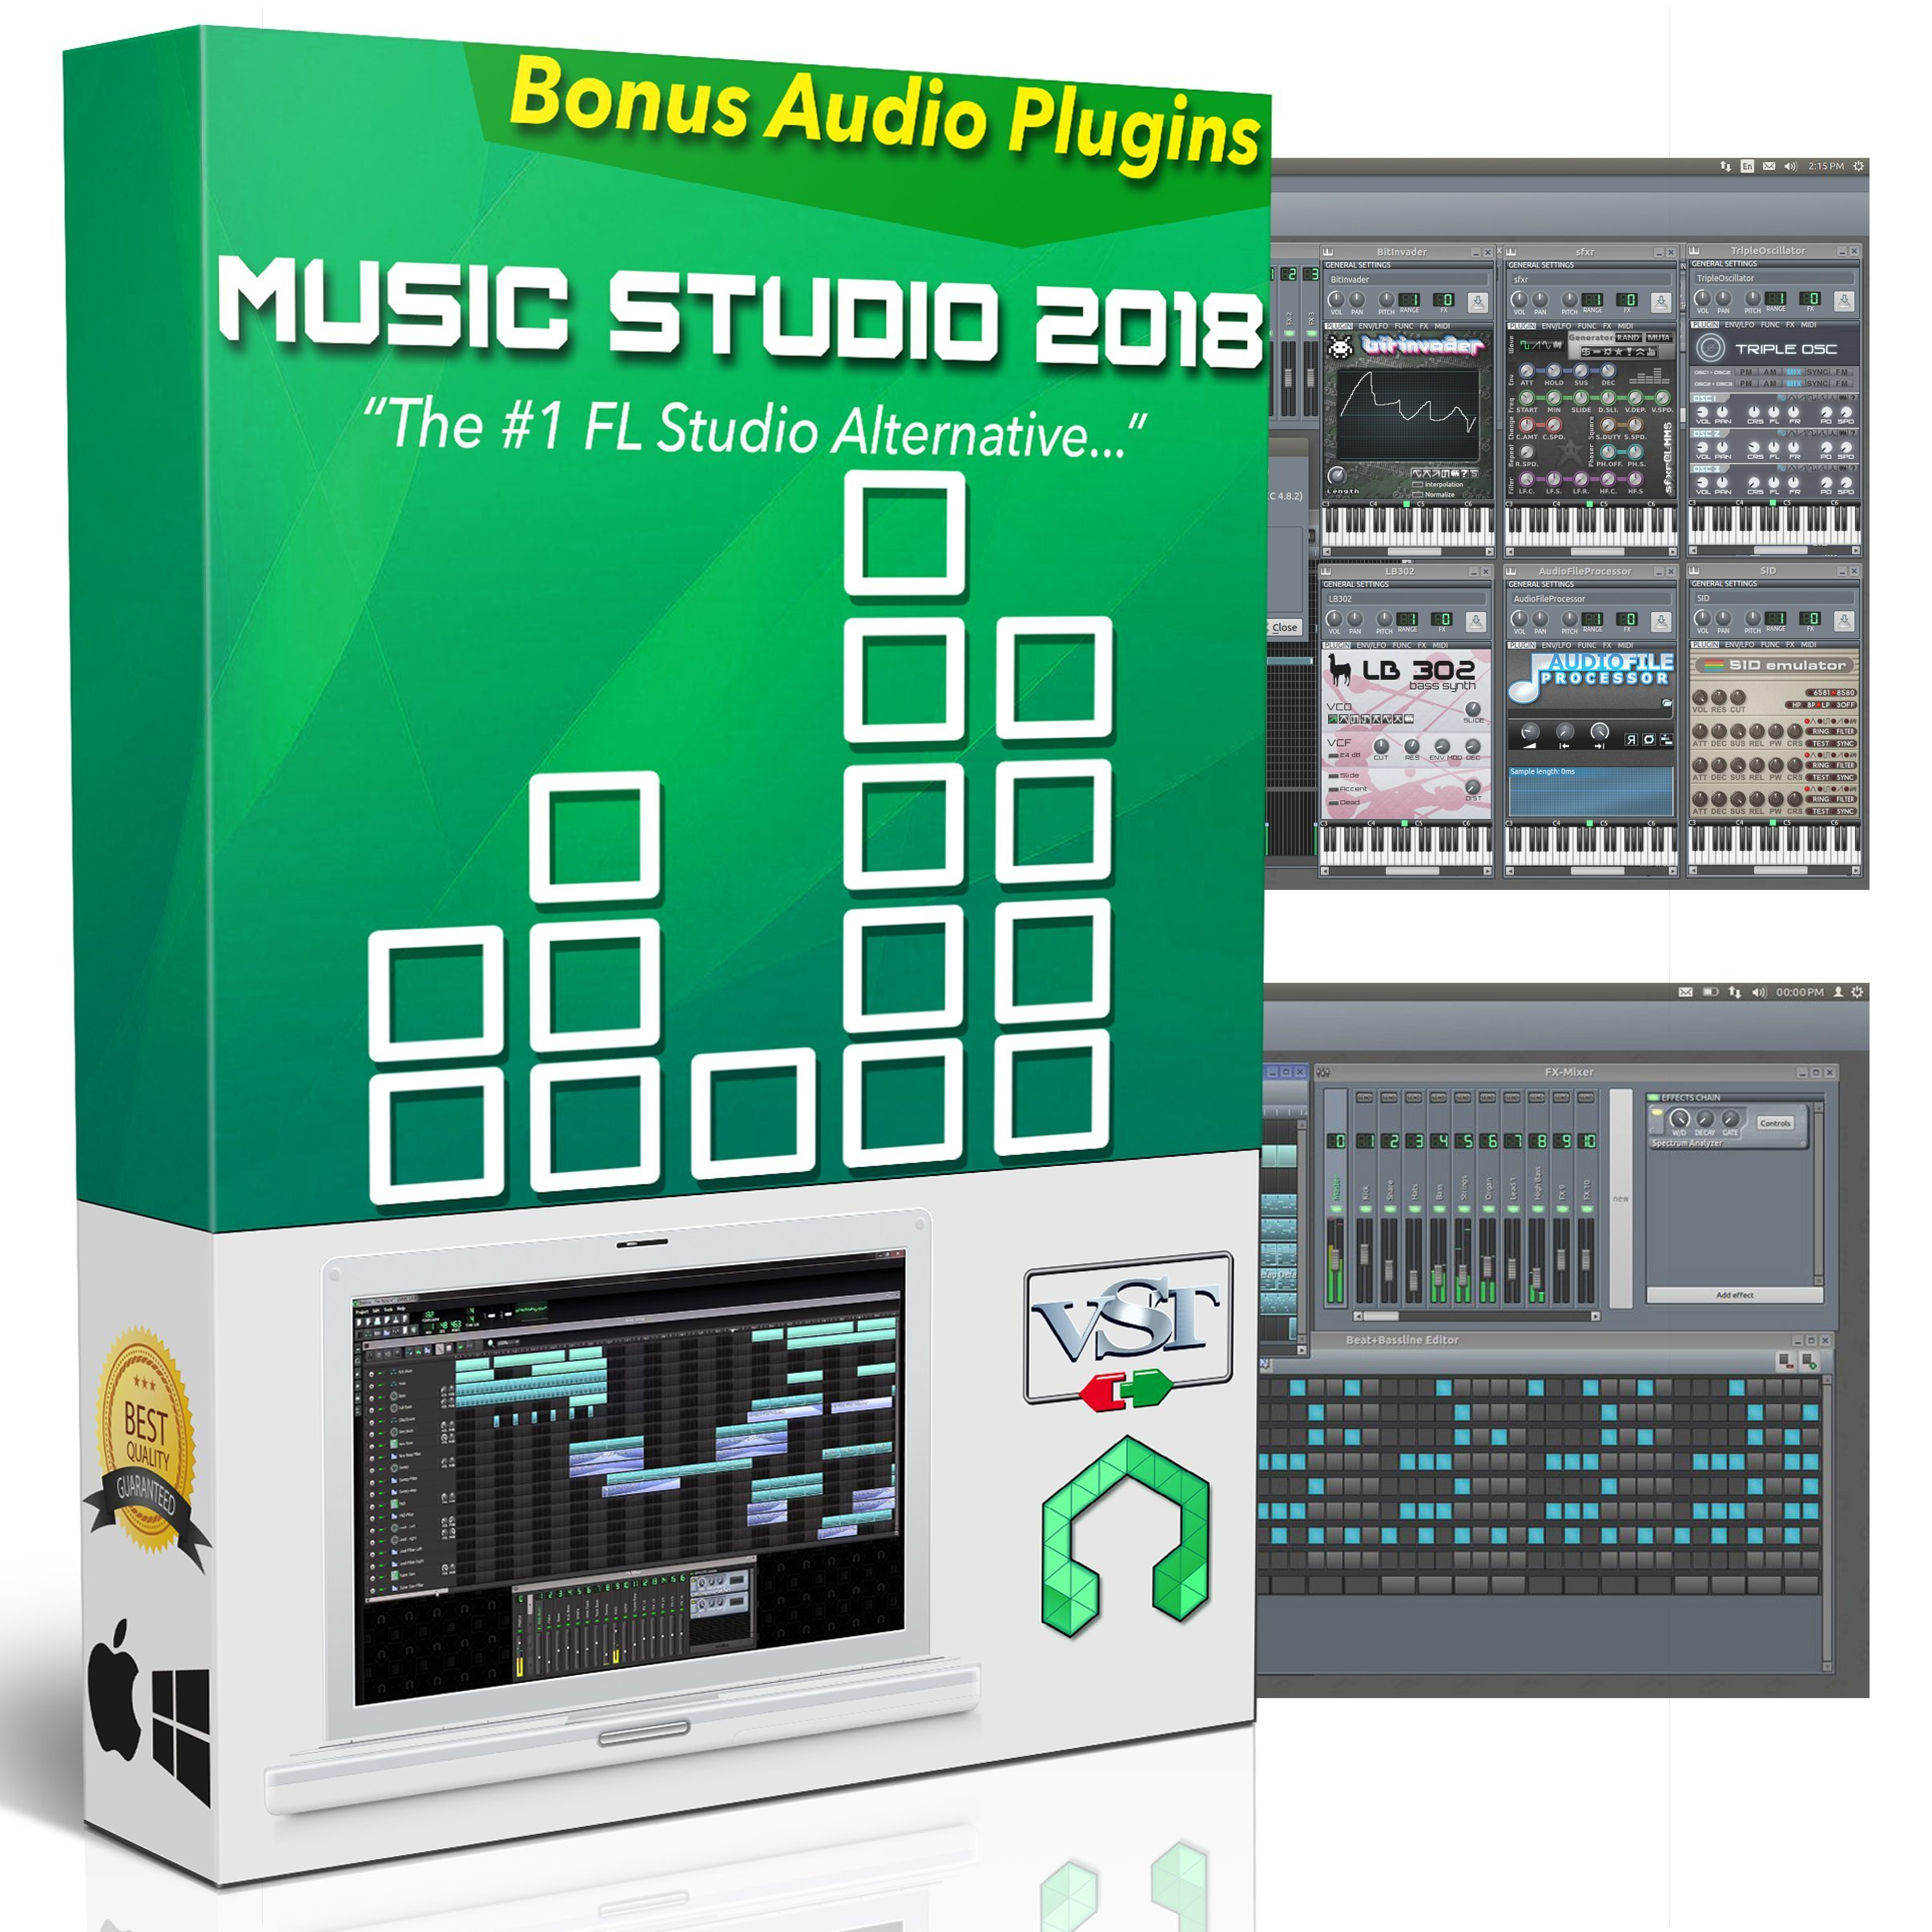 Music Studio 2018: Music Production Software - Best Audio Recording & Editing Software for Windows, Mac, & Linux + Audio Plugins, Tutorials & Guides Bundle by Music Studio